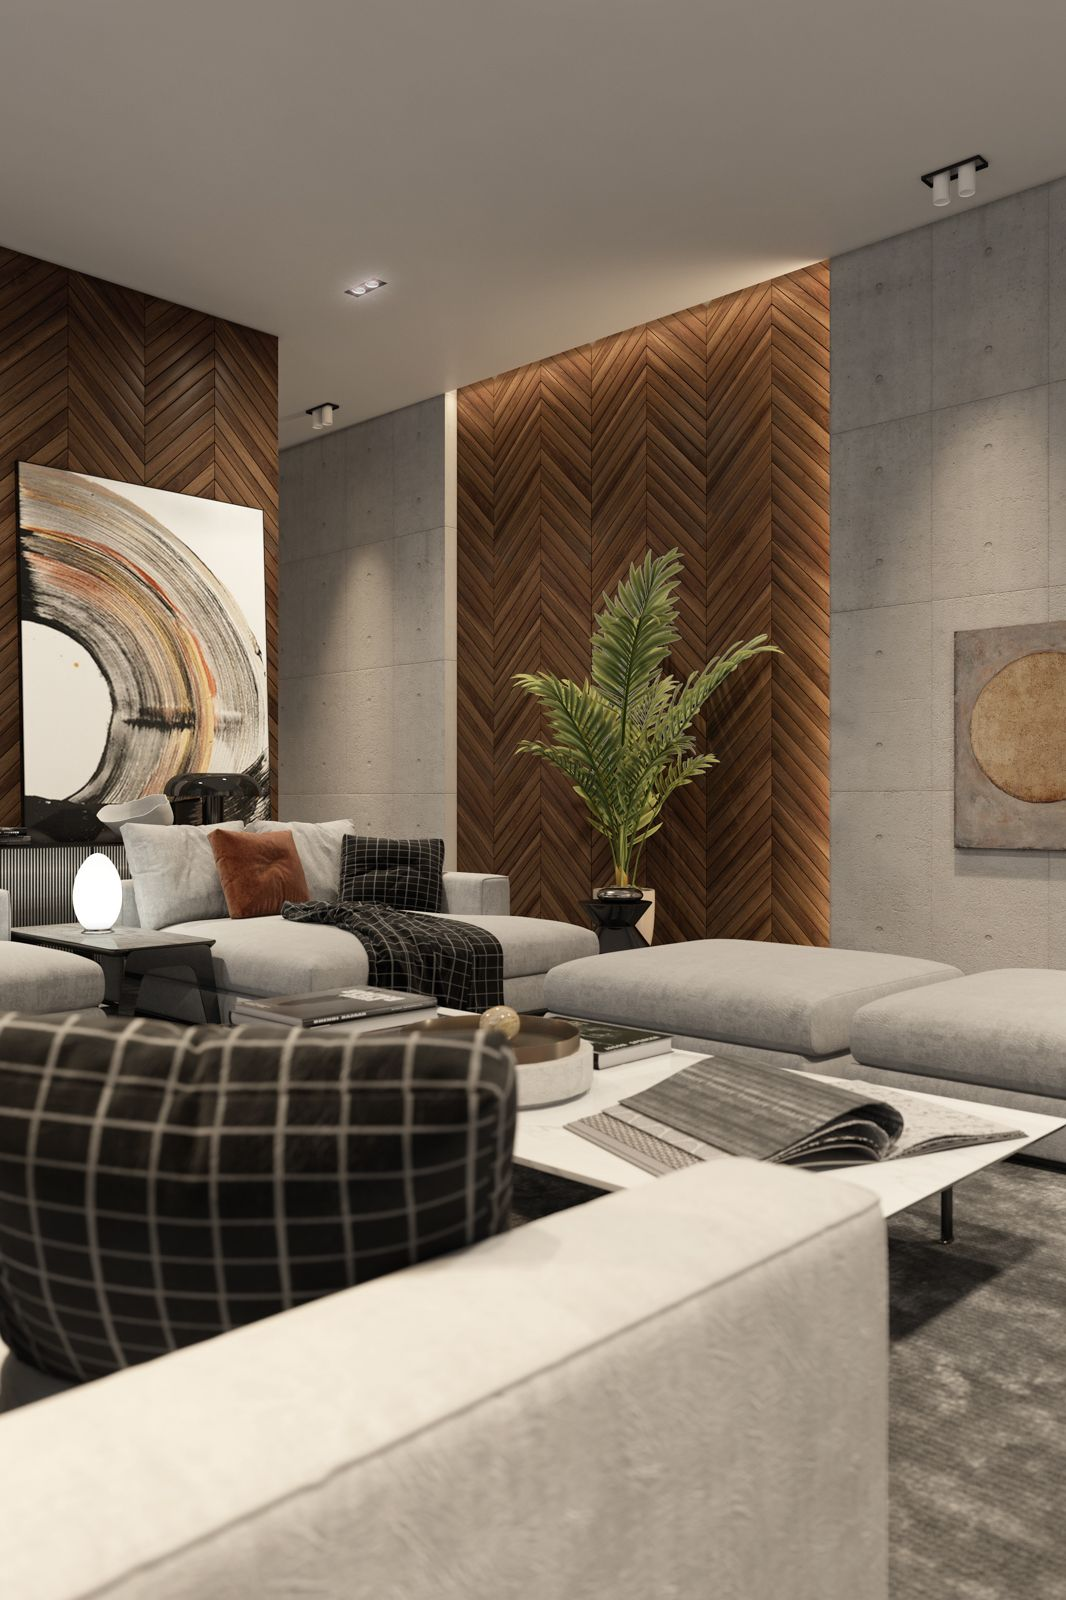 French Fir Wooden Wall Panels In Interior Of Living Room Drawing